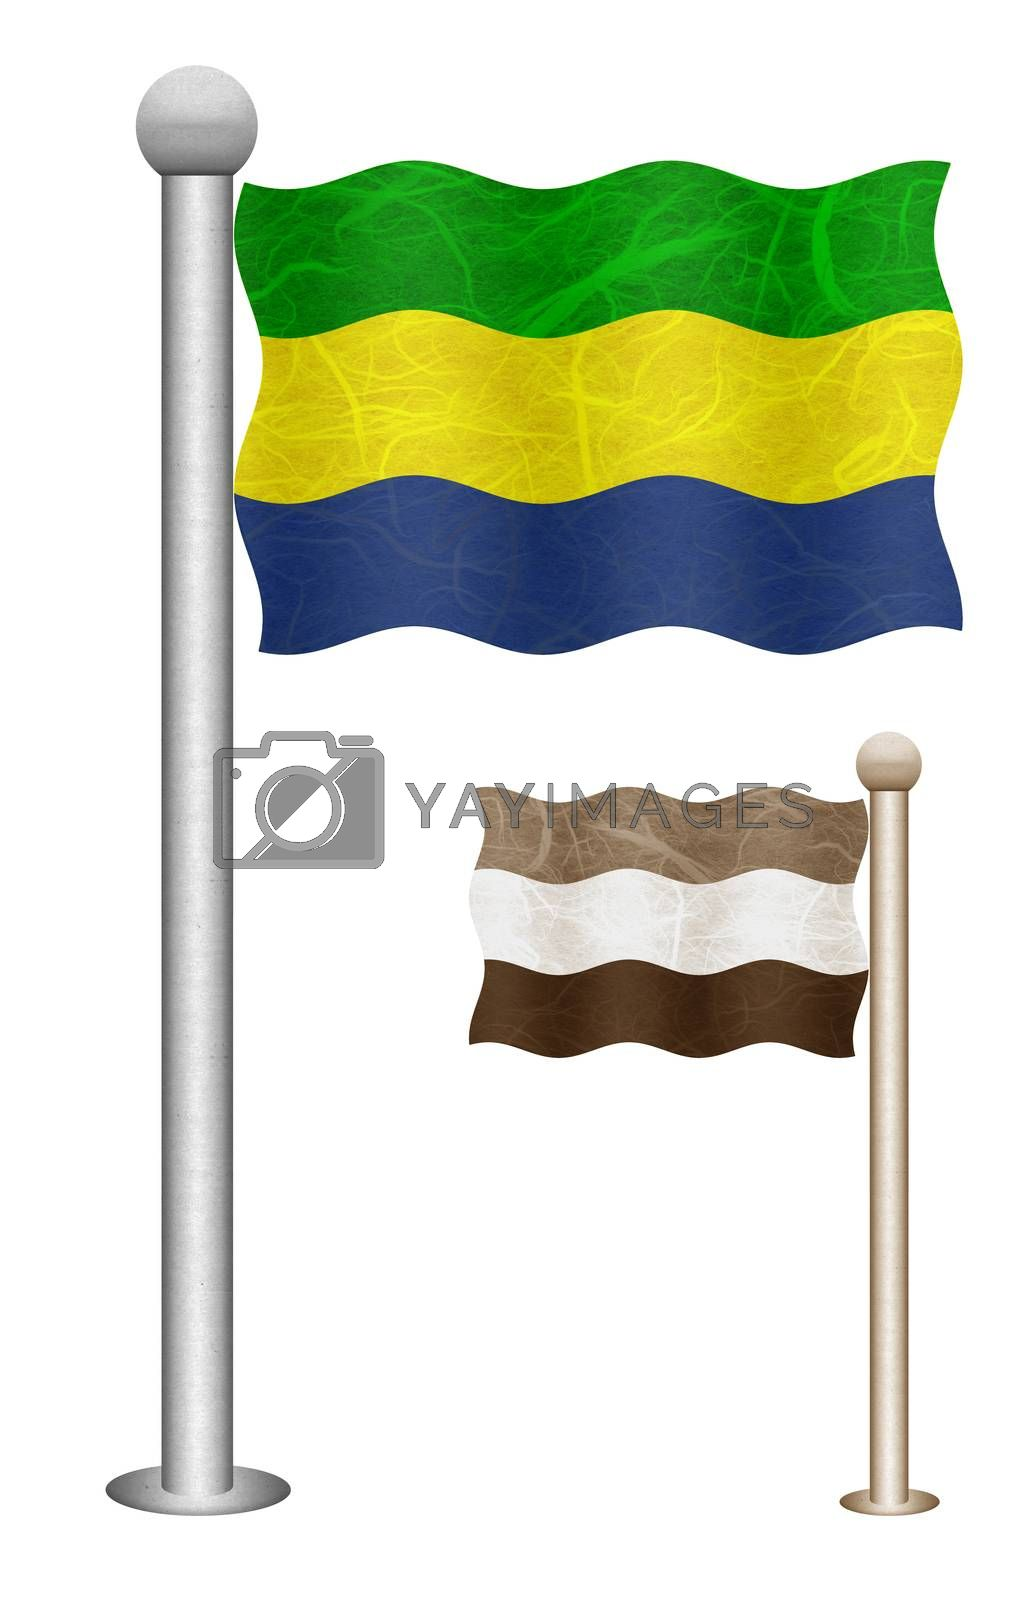 Royalty free image of Flag pole recycled paper  by thanarat27